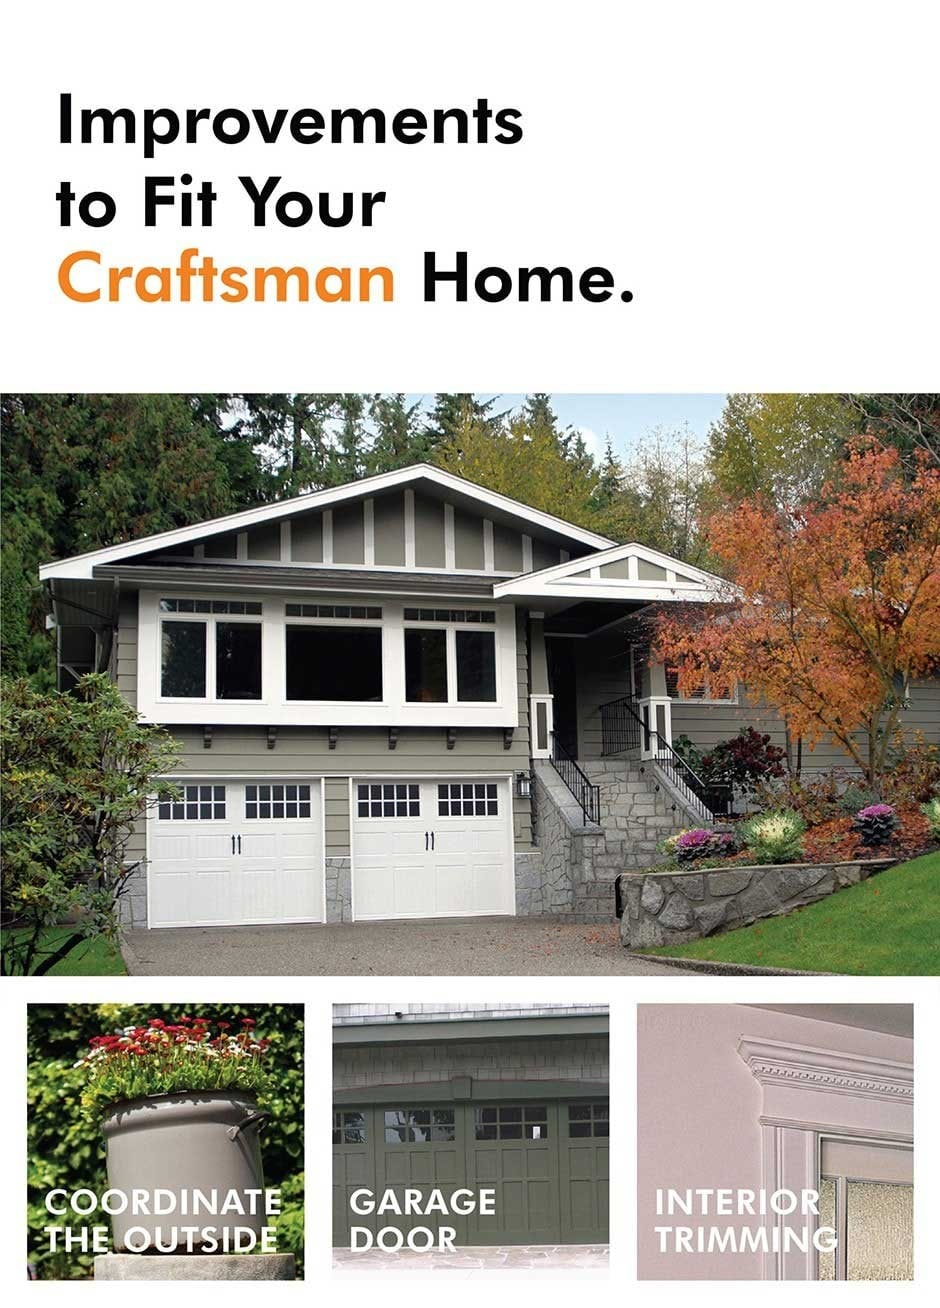 Home improvement ideas for a craftsman home